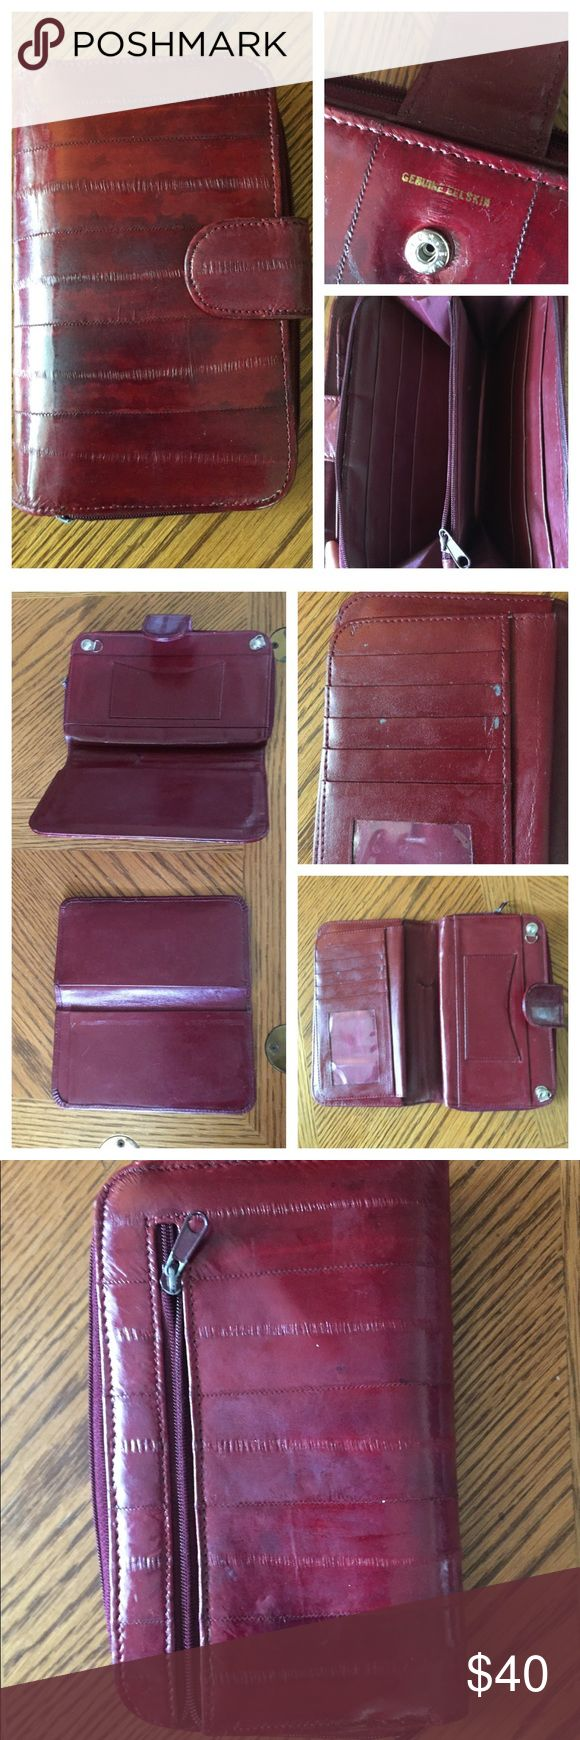 """Vintage Burgundy Eel Skin Clutch Wallet This genuine Eel Skin wallet is in a rich burgundy and is soft as butter.  Compartments galore! Hooks available to attach a chain to make into a cross-body purse. Both sides/inside shown in pics. Measures 7-1/4"""" x  5"""" closed. In wonderful preowned vintage condition showing slight wear on the removable checkbook/credit card/license compartment as shown. Scars, wrinkles, scratches, as well as subtle variations in the color are characteristics of eel skin…"""